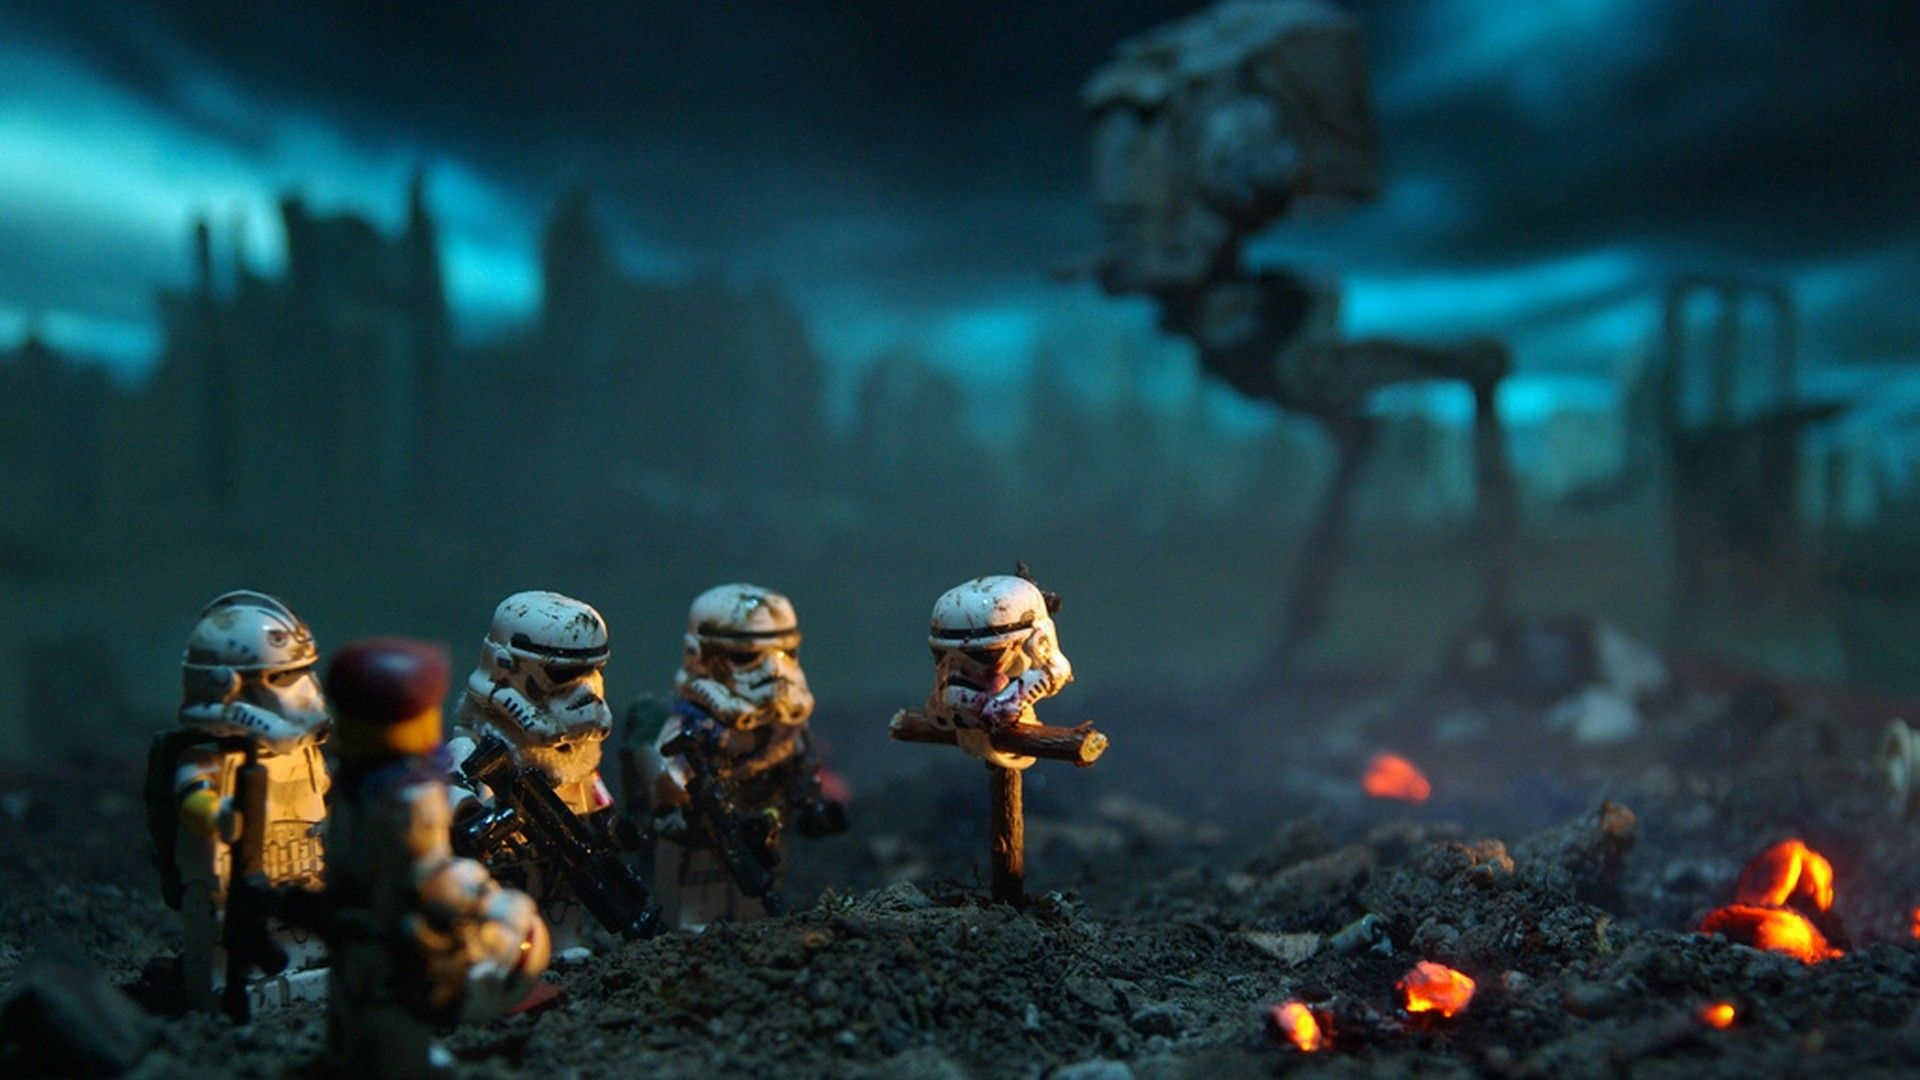 Hd Wallpaper Hd Wallpapers Backgrounds Of Your Choice Star Wars Illustration Star Wars Wallpaper Lego Stormtrooper